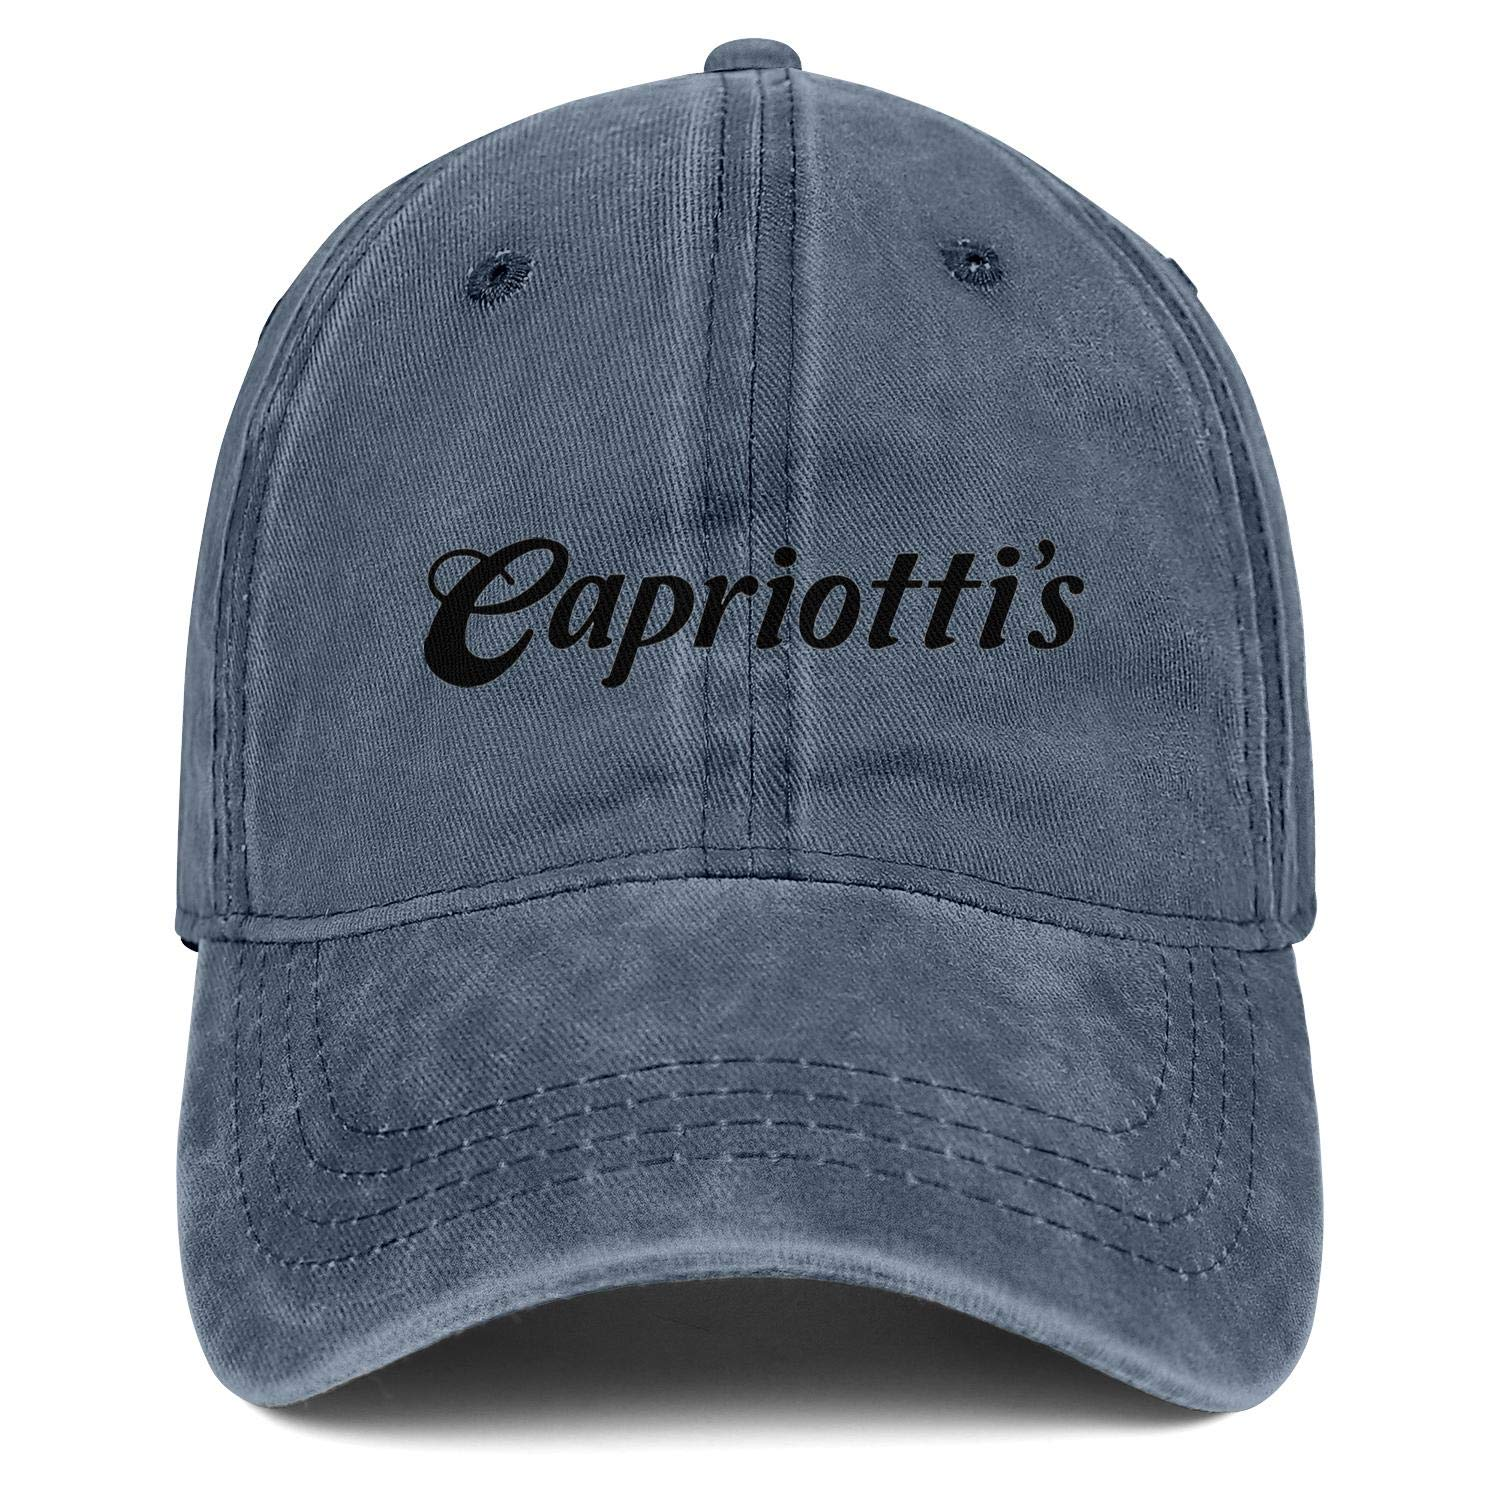 chenhou Unisex Capriottis Logo Hat Adjustable Fitted Dad Baseball Cap Trucker Hat Cowboy Hat